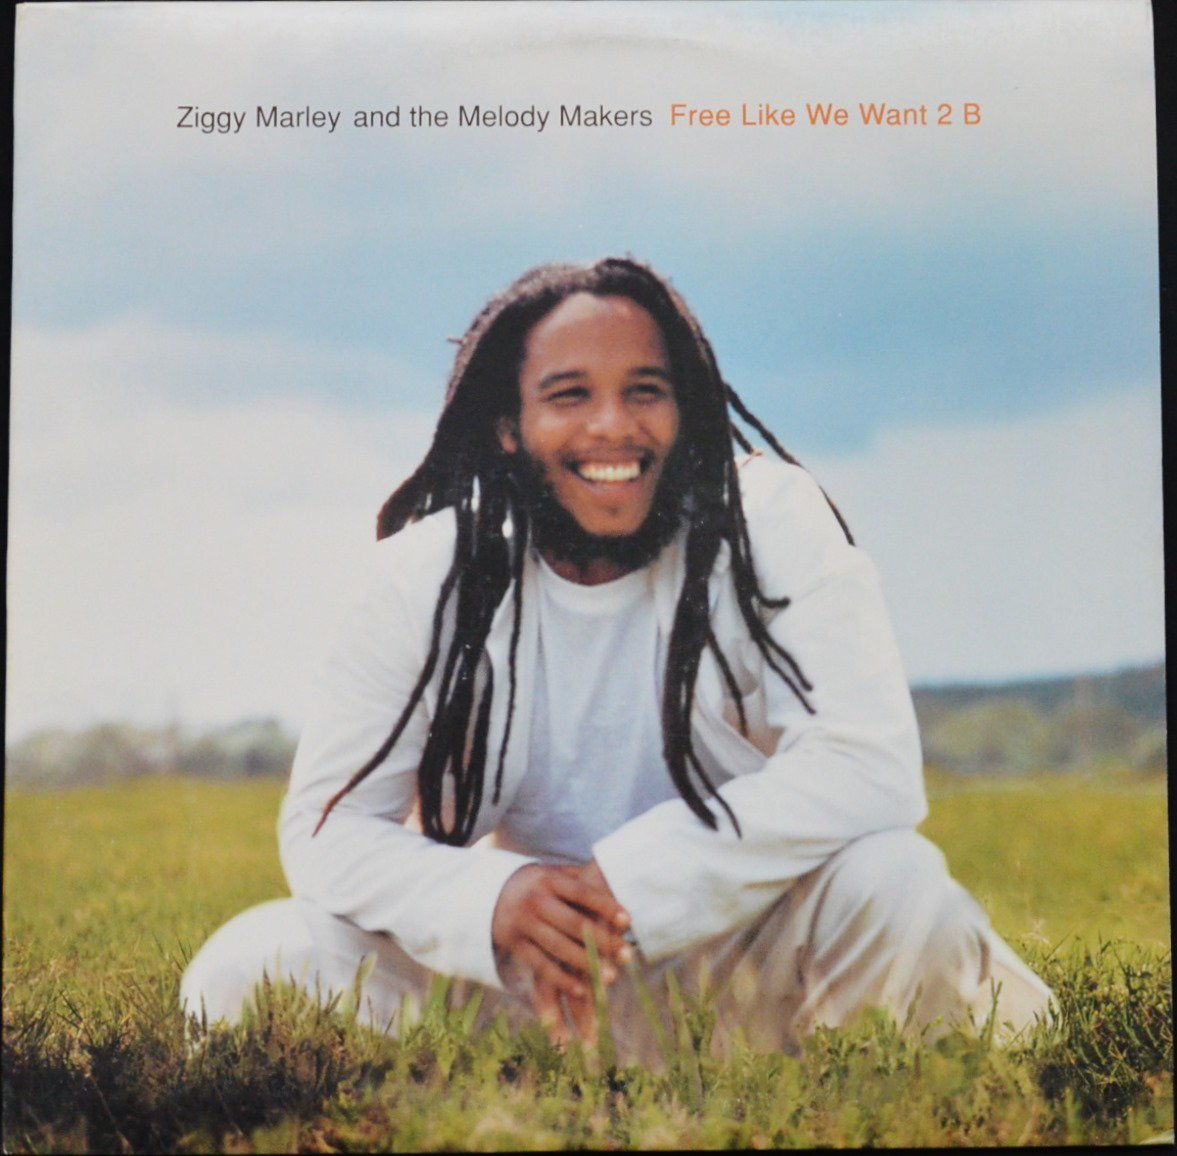 ZIGGY MARLEY AND THE MELODY MAKERS / FREE LIKE WE WANT 2 B (1LP)